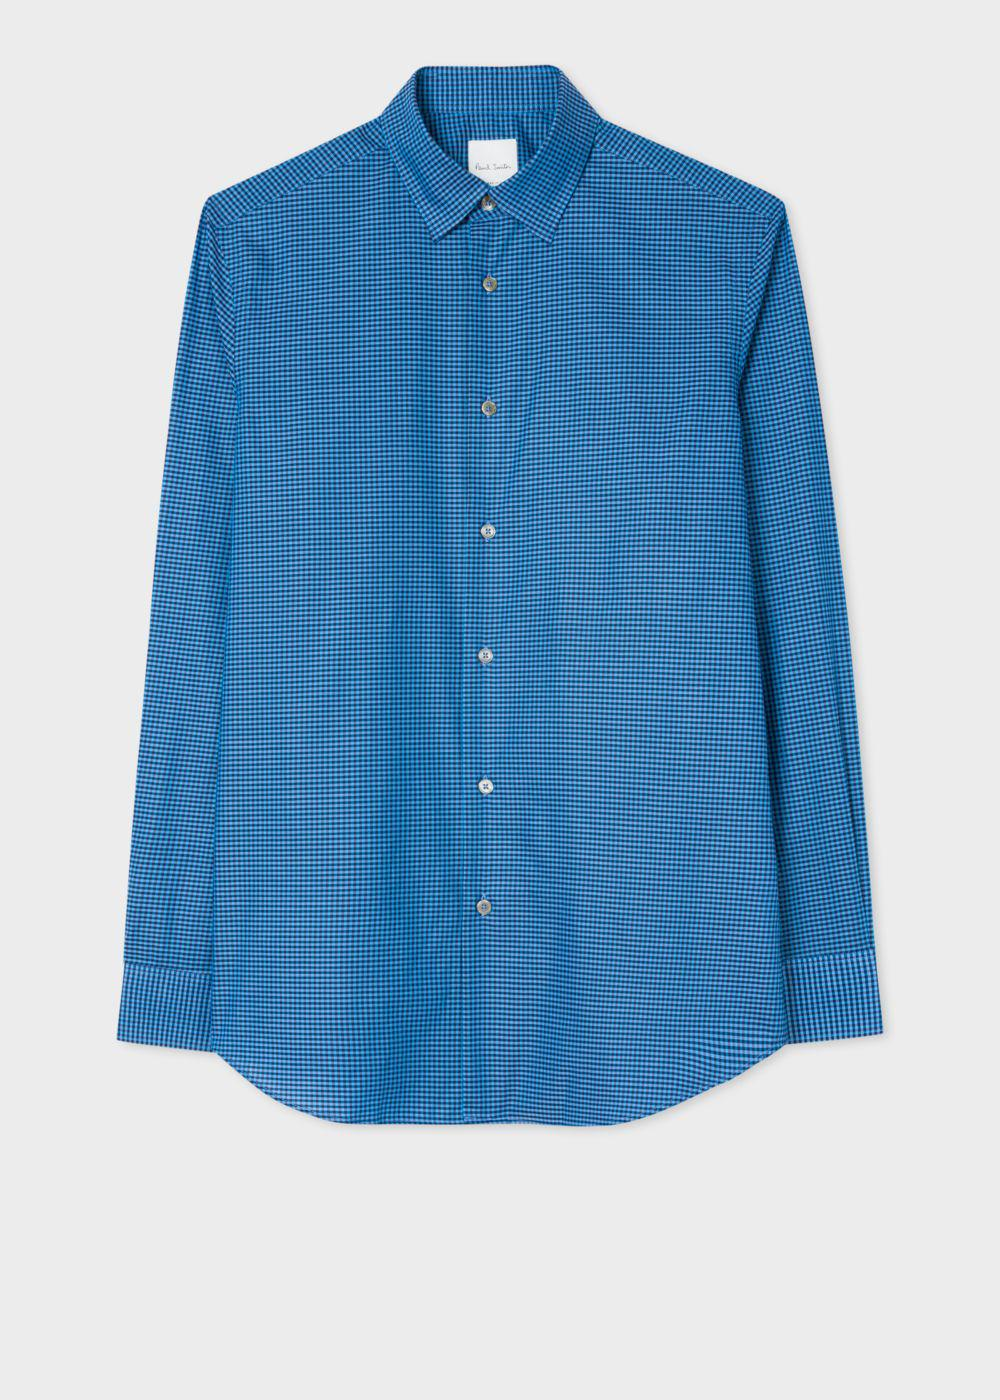 Lyst Paul Smith Men 39 S Tailored Fit Blue Gingham Check